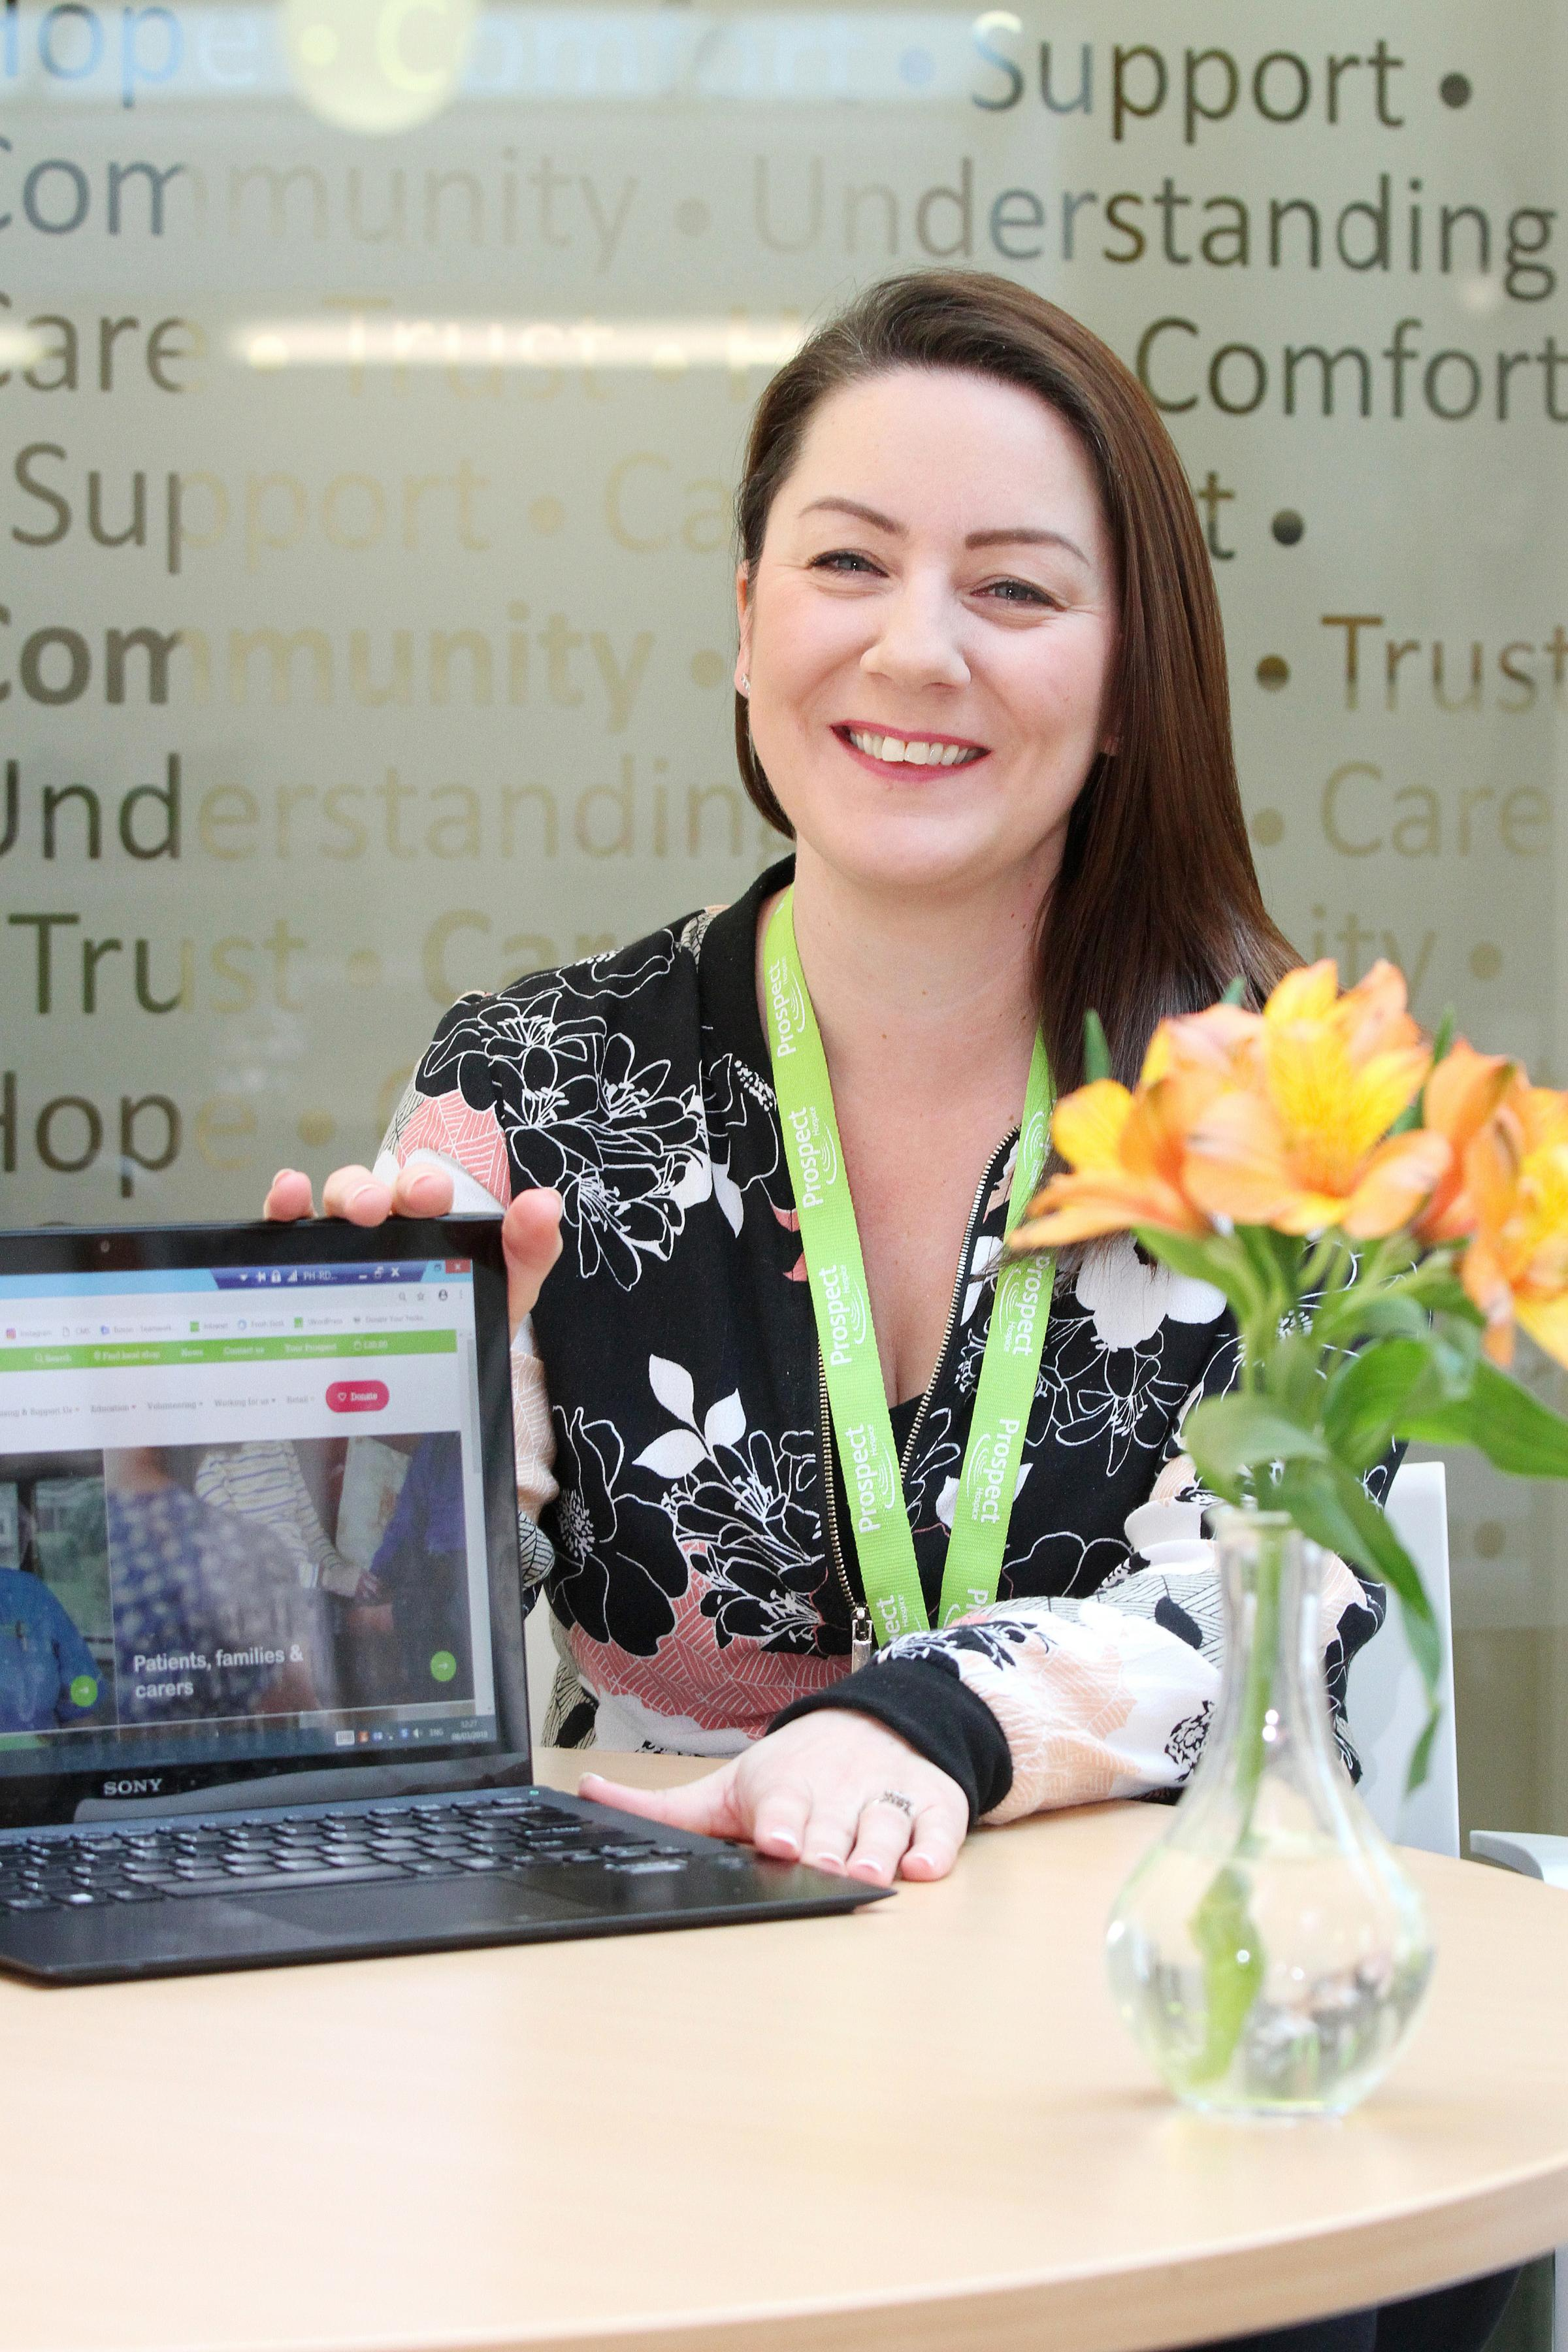 Digital marketing guru Michelle Jones from Prospect Hospice